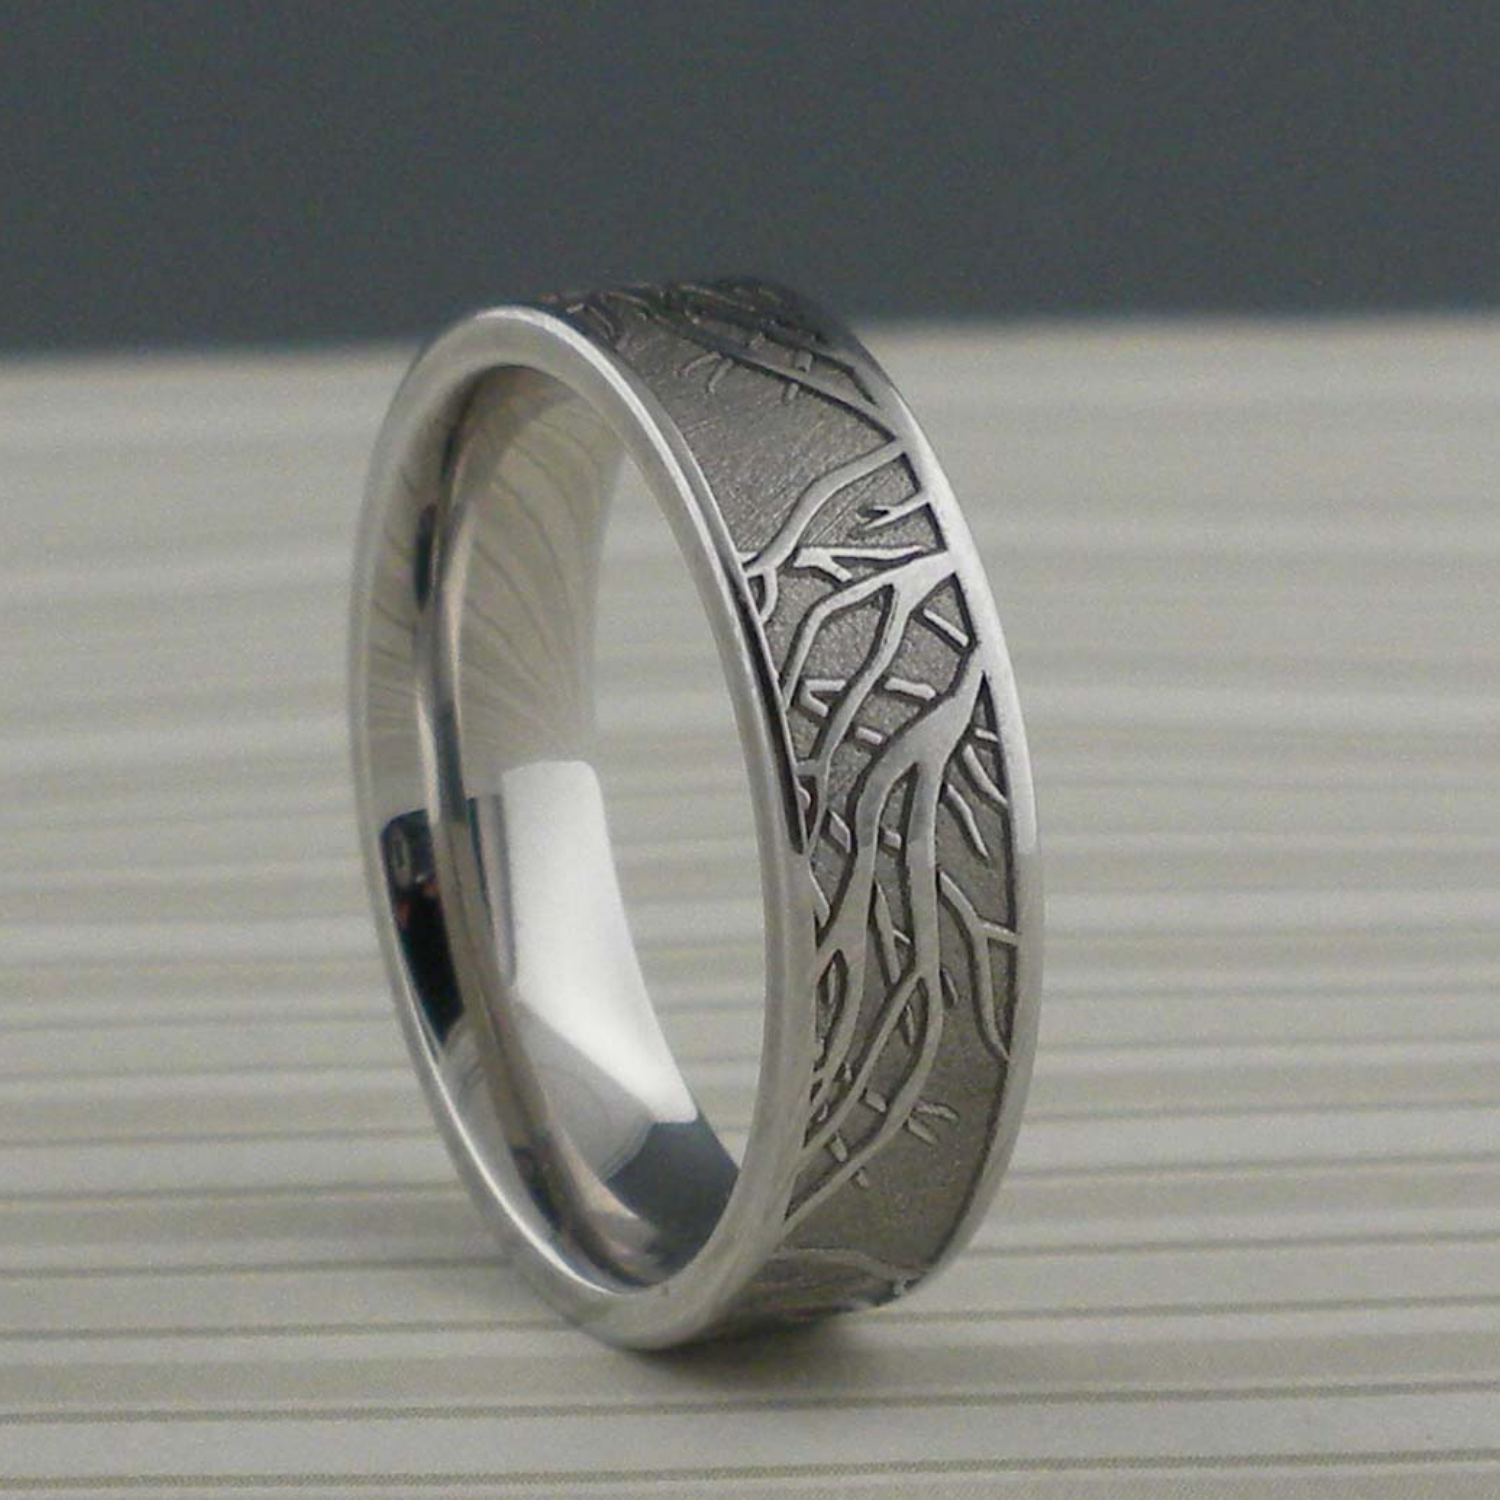 Cobalt Chrome Wedding Ring With Tree Of Life Branches Unique Titanium Wedding Rings Wedding Rings Unique Vintage Engagement Rings Unique Titanium Wedding Rings